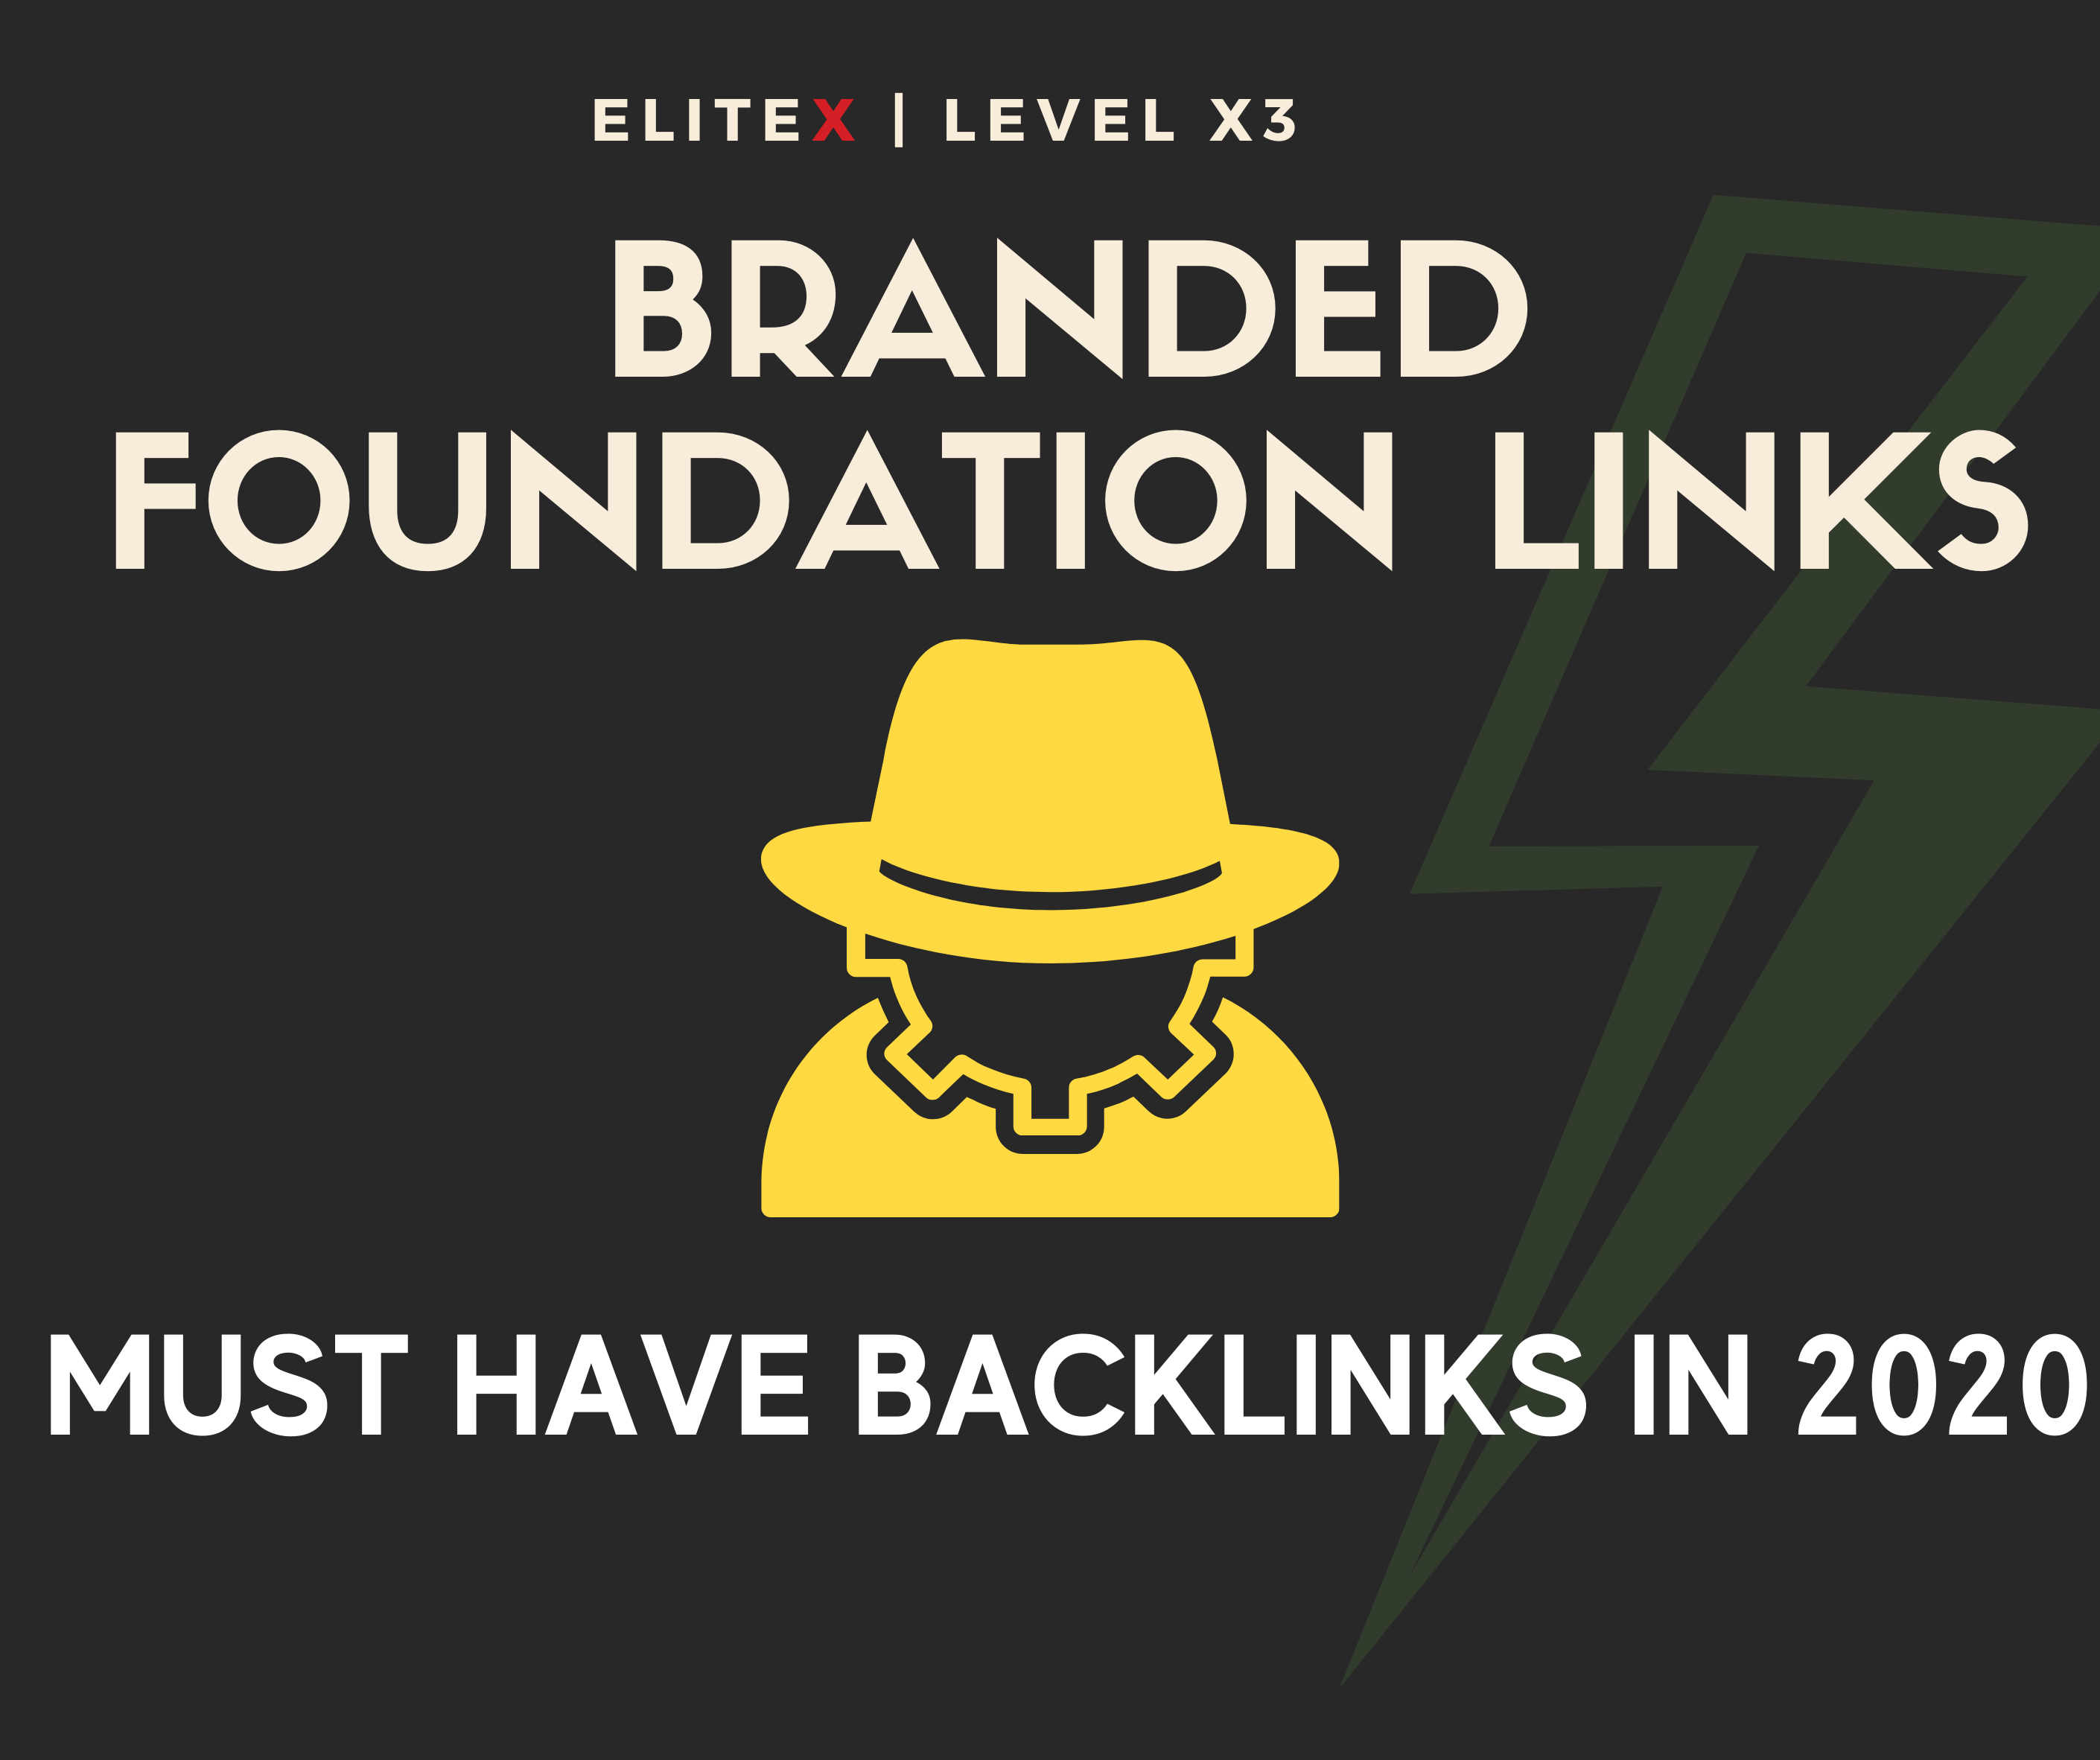 HIGH AUTHORITY BRANDED FOUNDATION LINKS 2020 - MUST HAVE